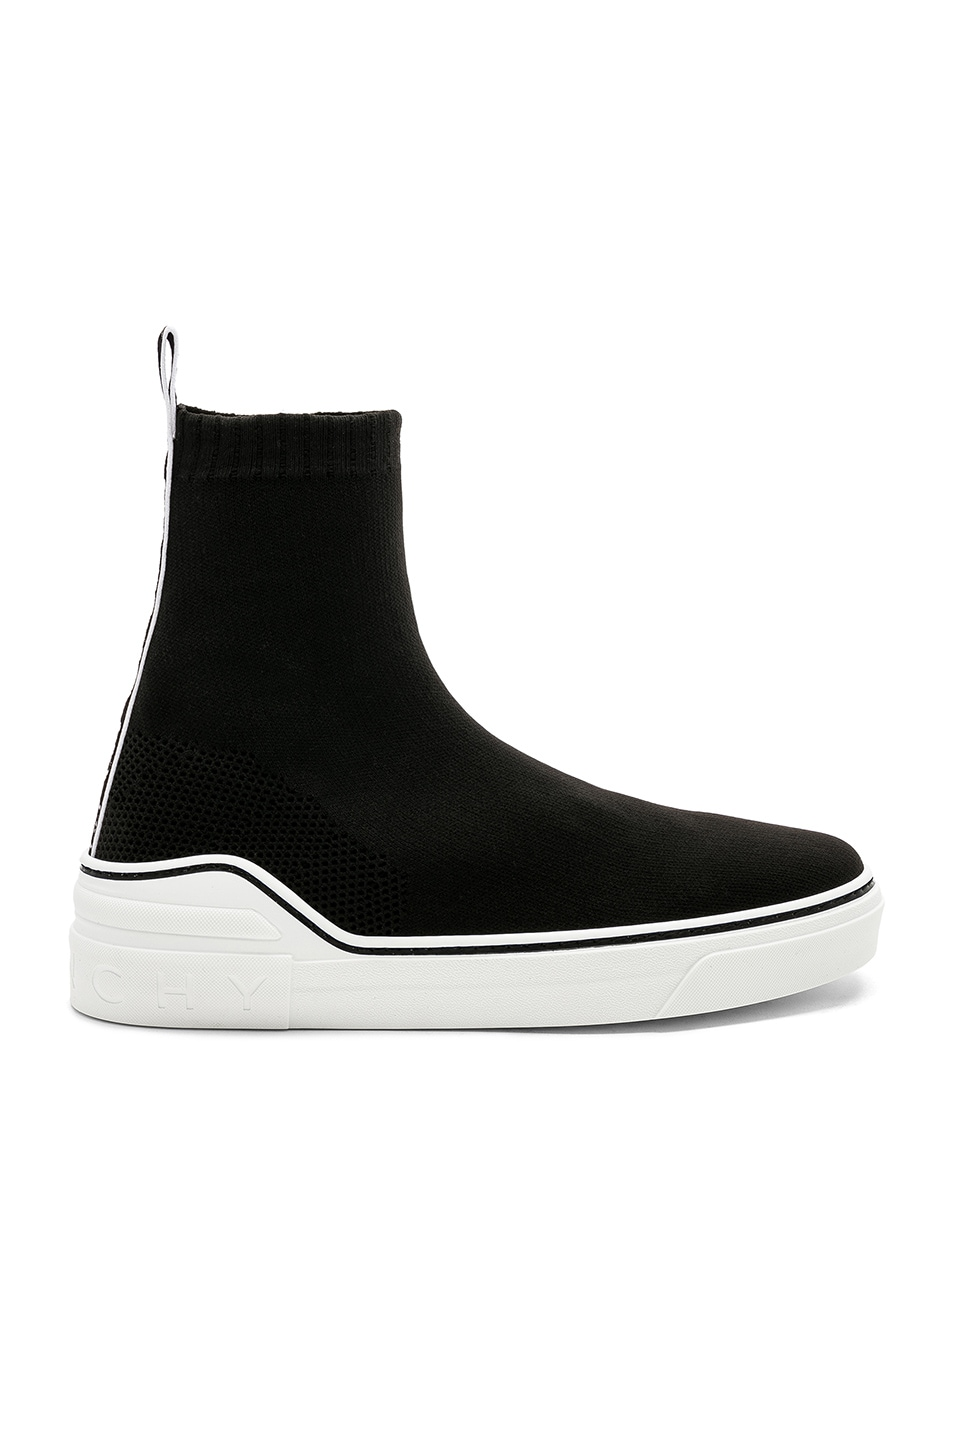 Image 2 of Givenchy George V Mid Sock Sneakers in Black & White